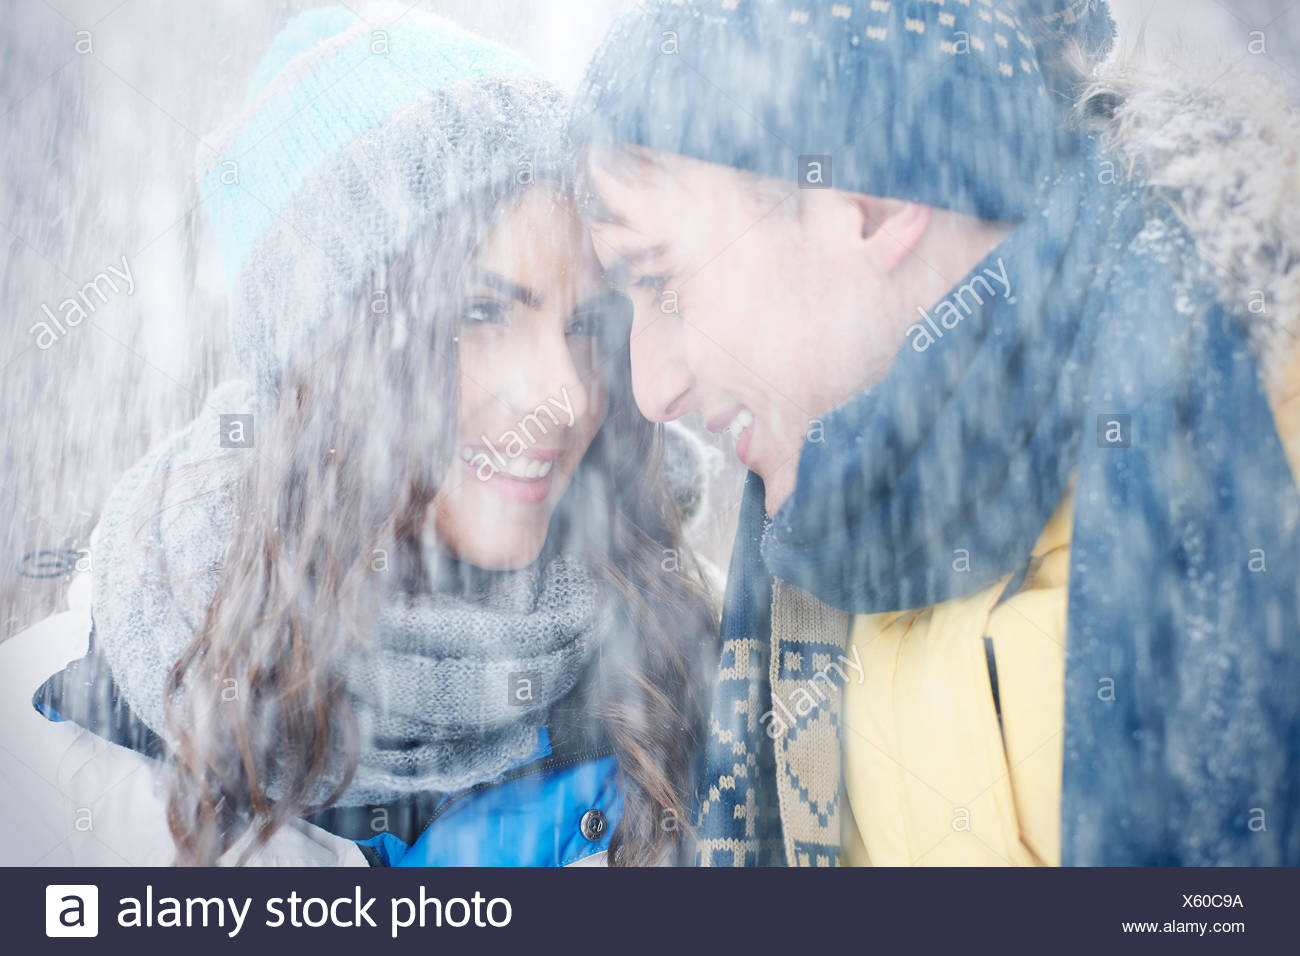 Warm me up in huge blizzard. Debica, Poland - Stock Image